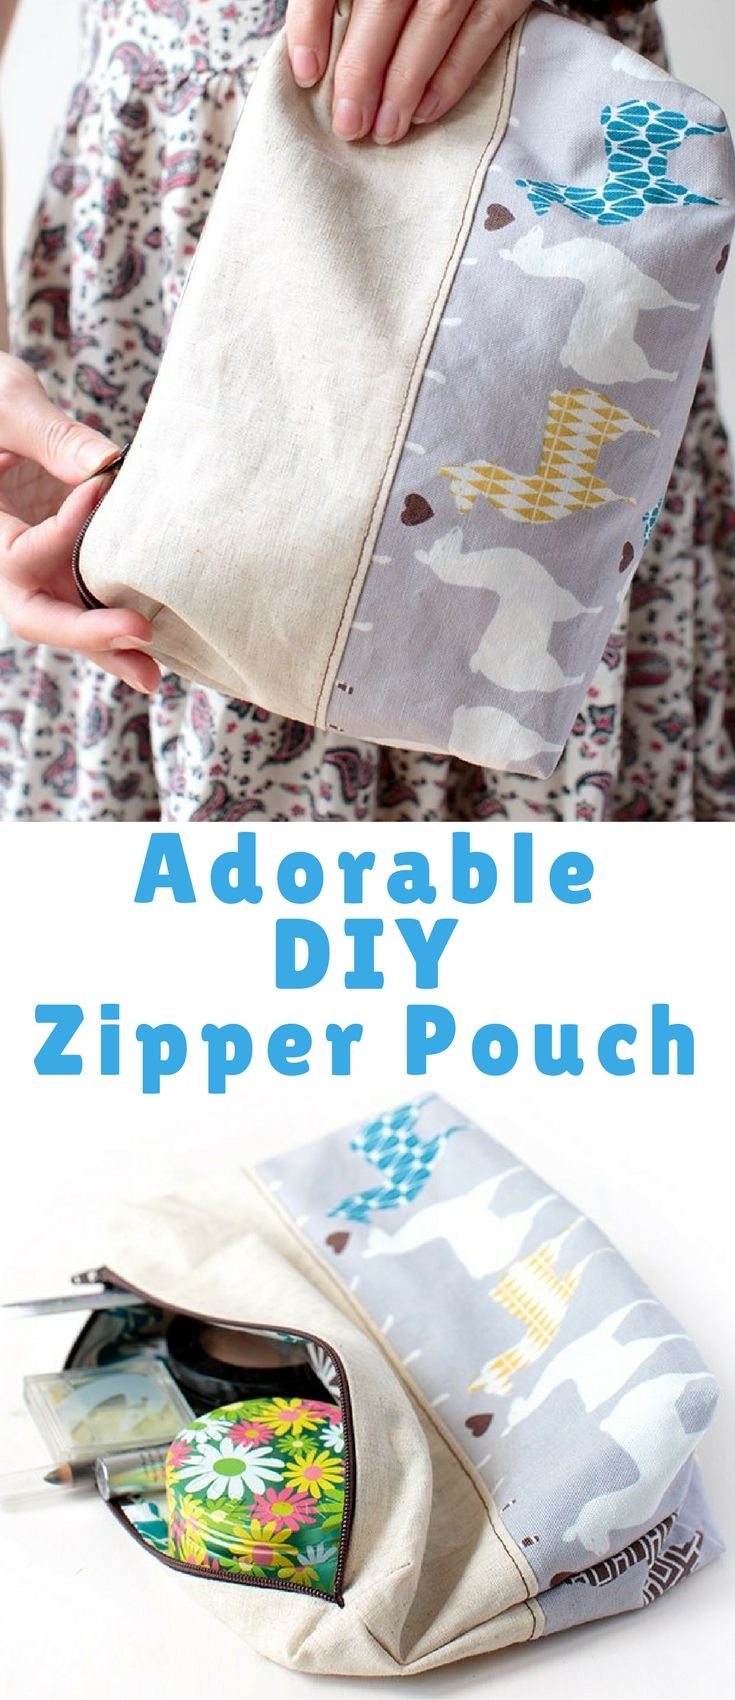 A DIY zipper pouch makes a very handy and quick sew last